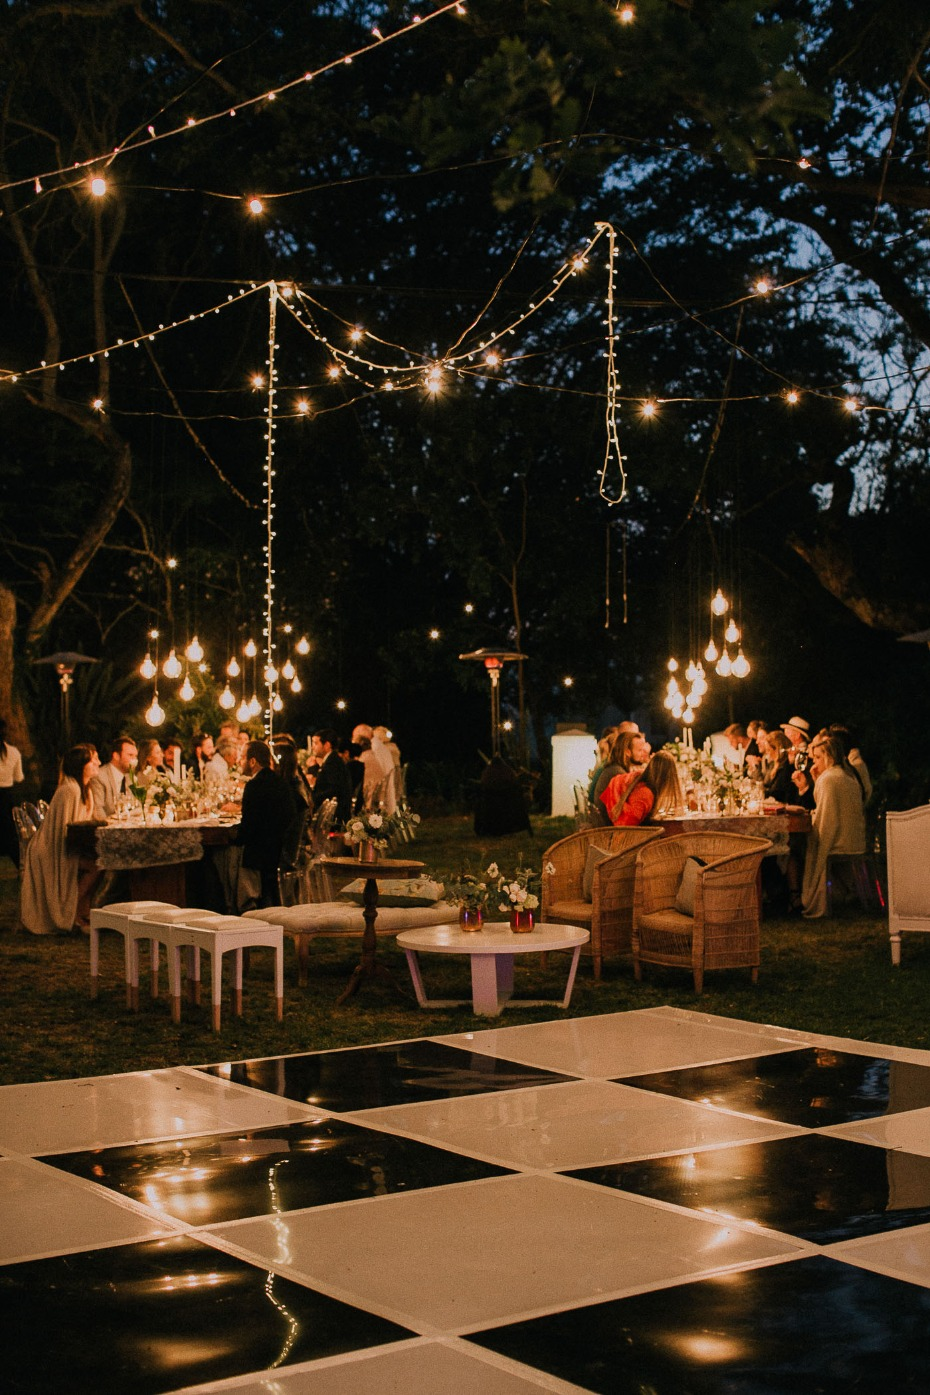 Checkered reception dance floor with hanging lights